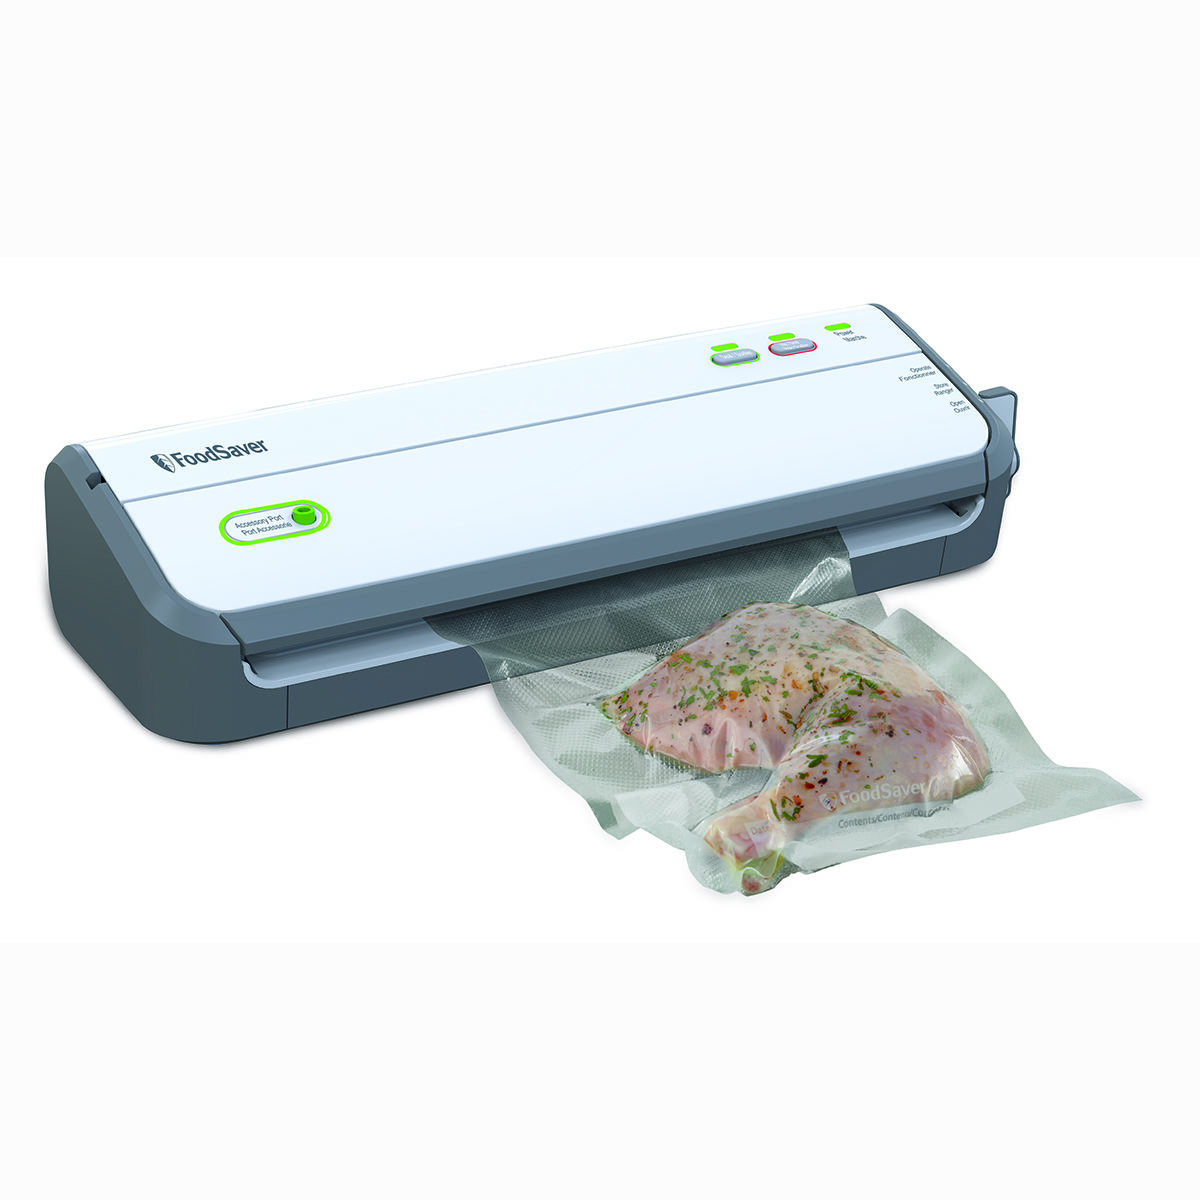 Vacuum sealers work in tandem with specially designed plastic bags. The vacuum sealer sucks all the air out of the bag and then seals the bag's opening with heat. This protects the food in the bag from oxidation, too much or too little humidity, mold spores, bacteria, and freezer burn.